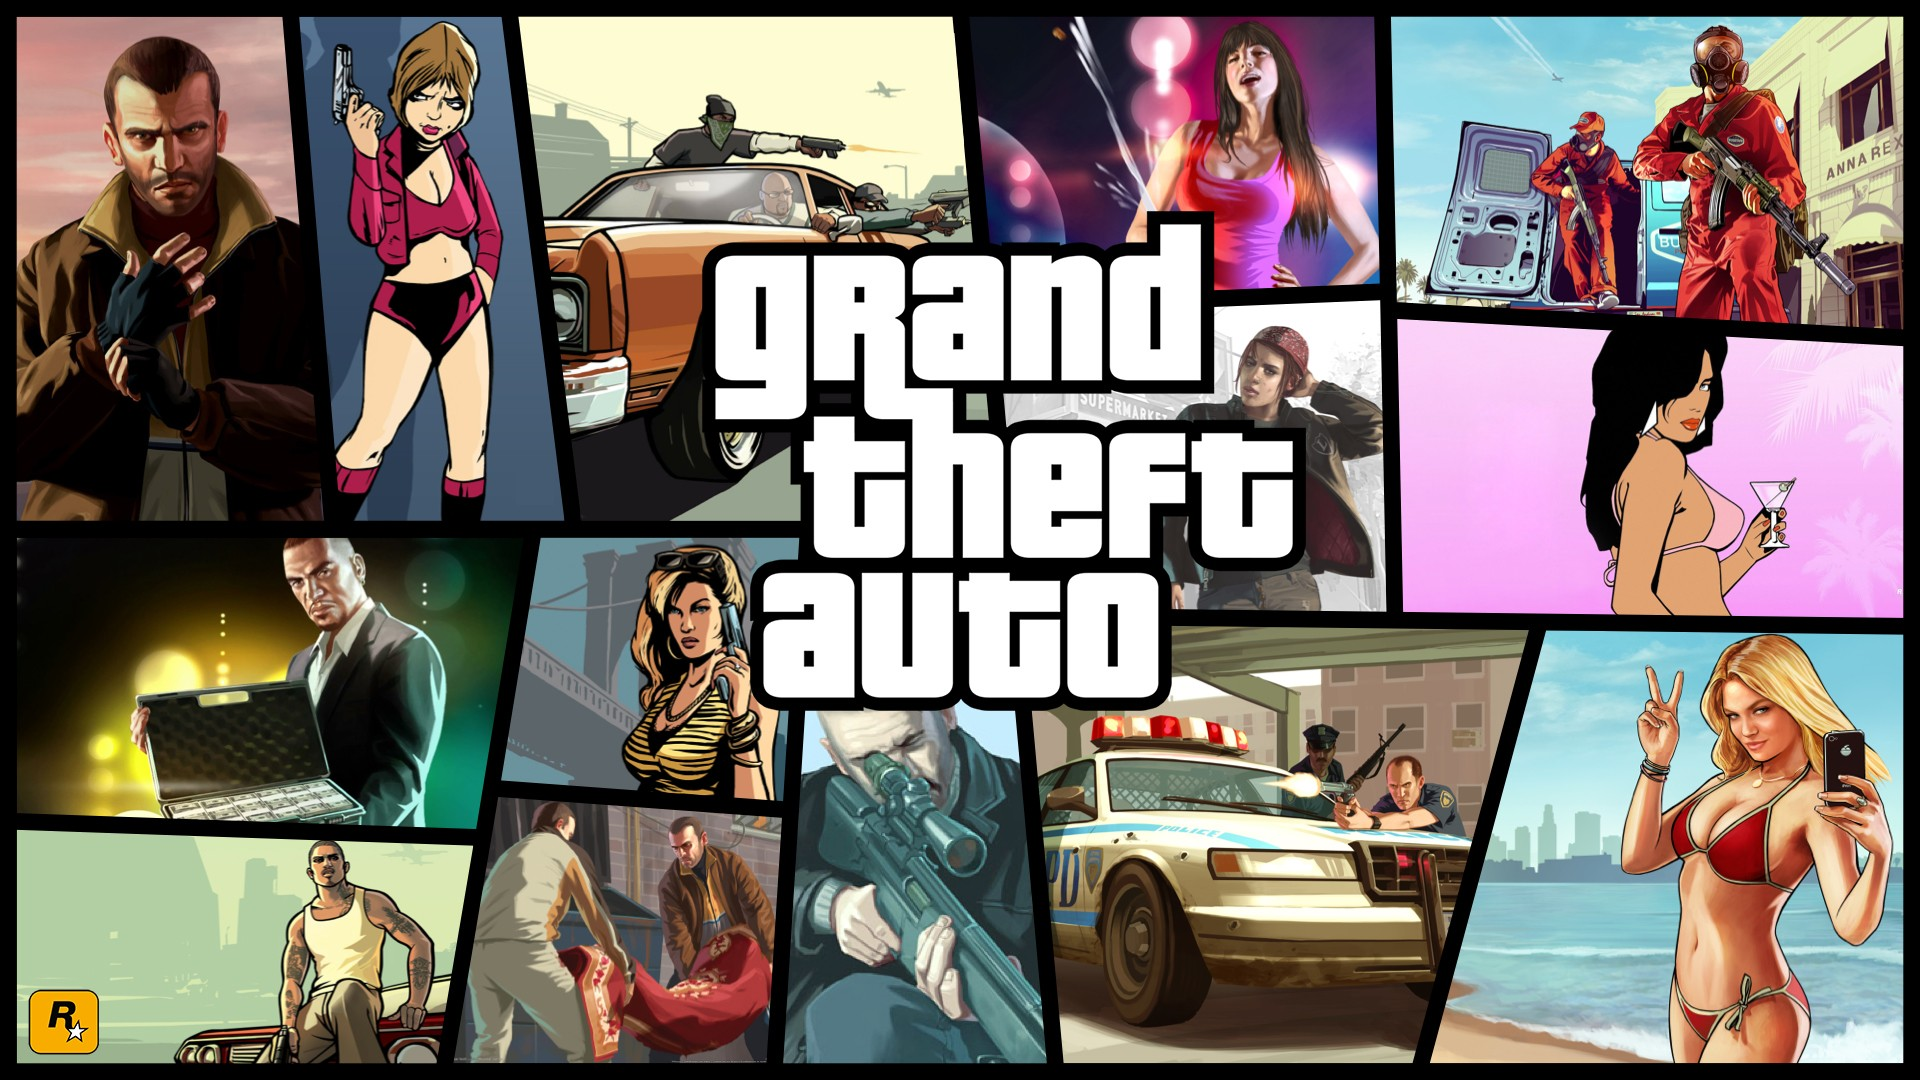 Reception of GTA Franchise